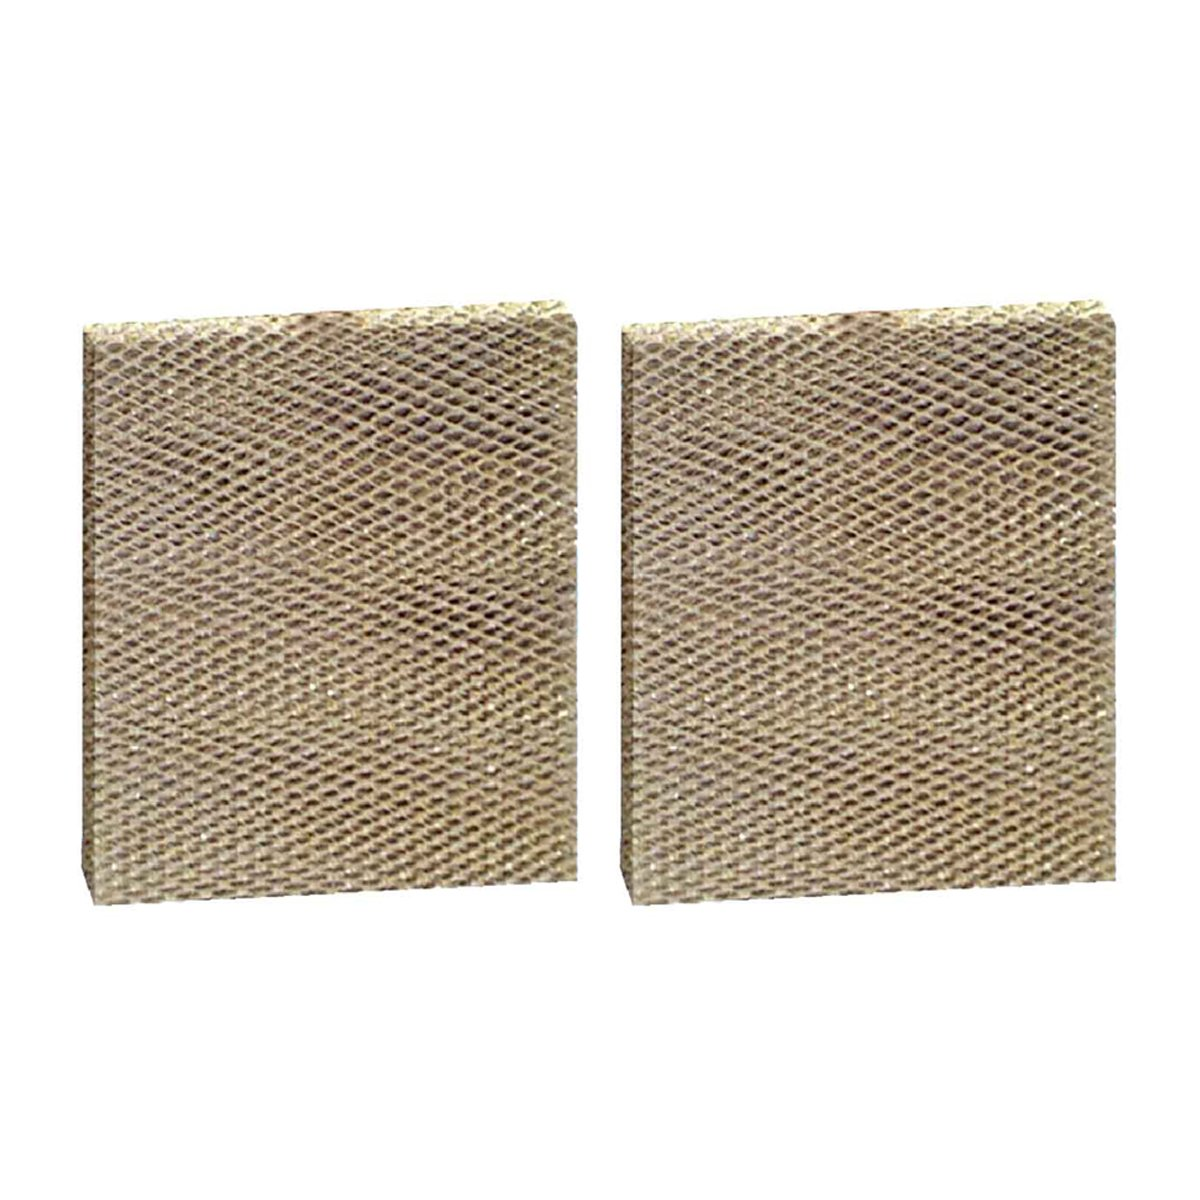 Tier1 Water Panel 35 Comparable Aprilaire 35 Humidifier Filter for Aprilaire Models 350, 360, 560, 560A, 568, 600 2 Pack